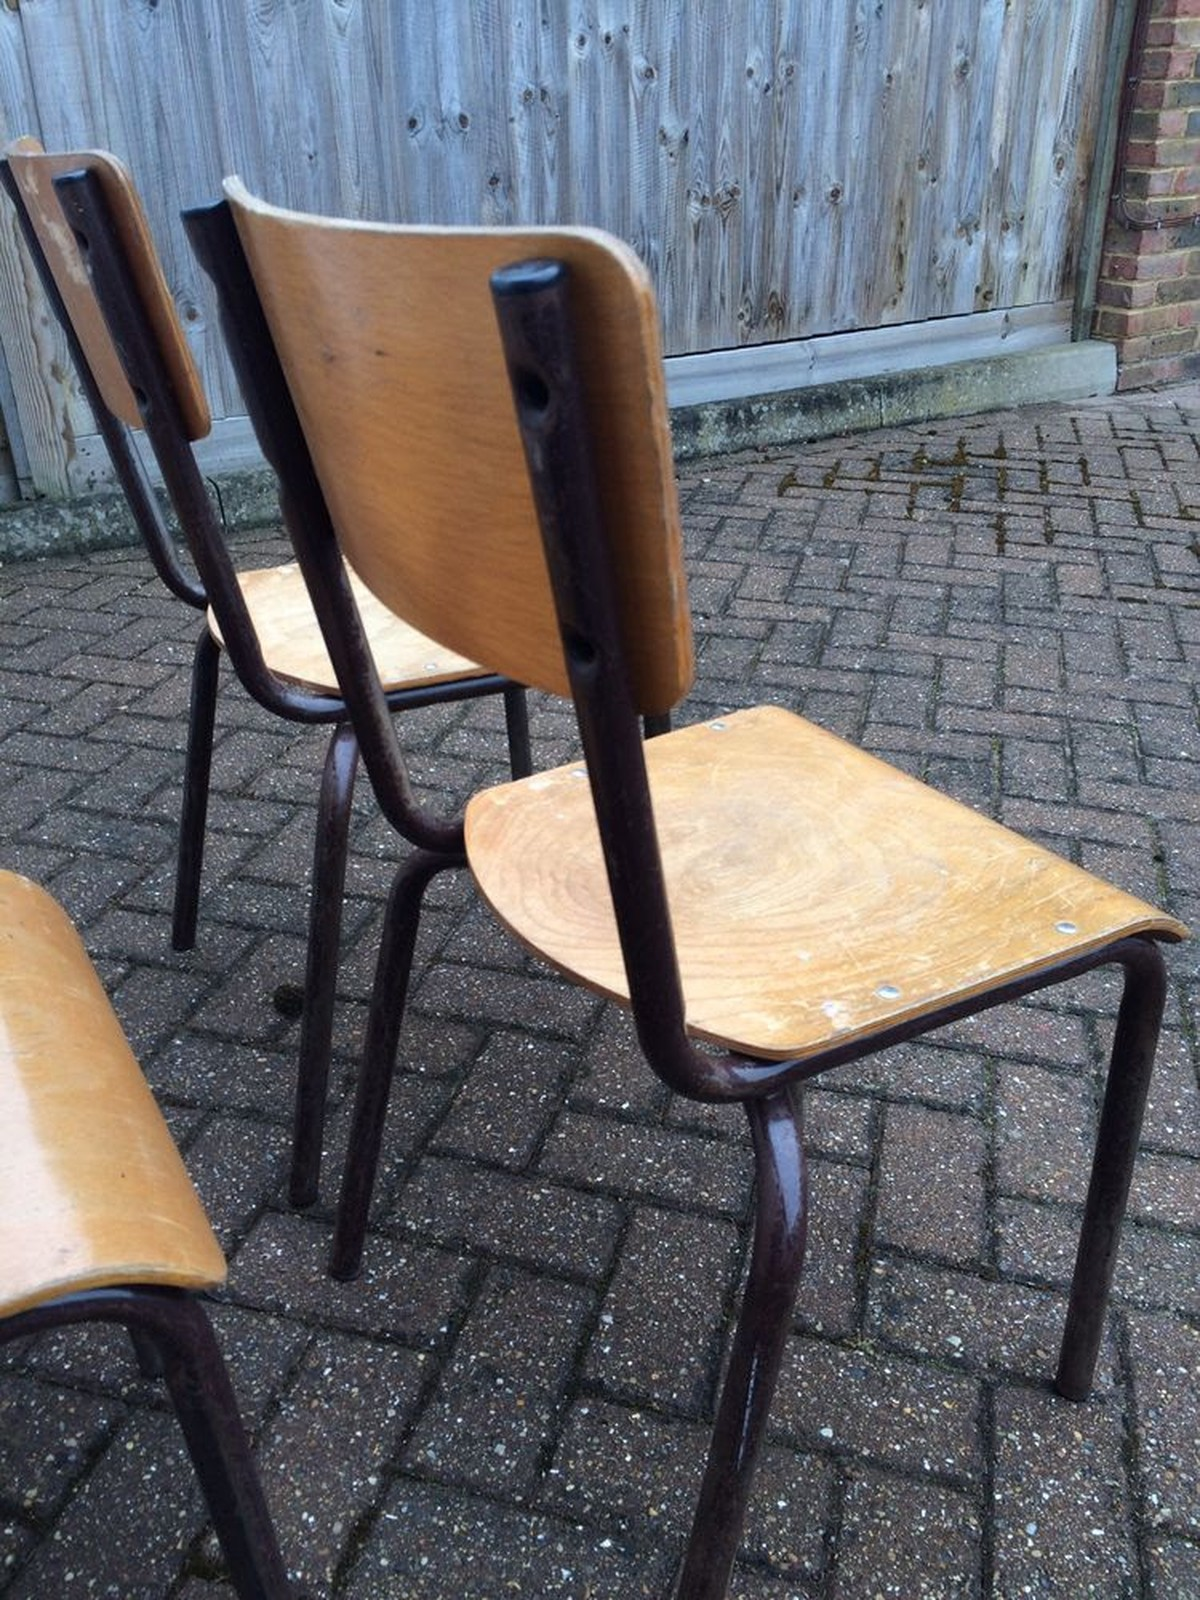 Vintage Wooden Chairs >> Secondhand Chairs and Tables | Cafe or Bistro Chairs | 66x ...